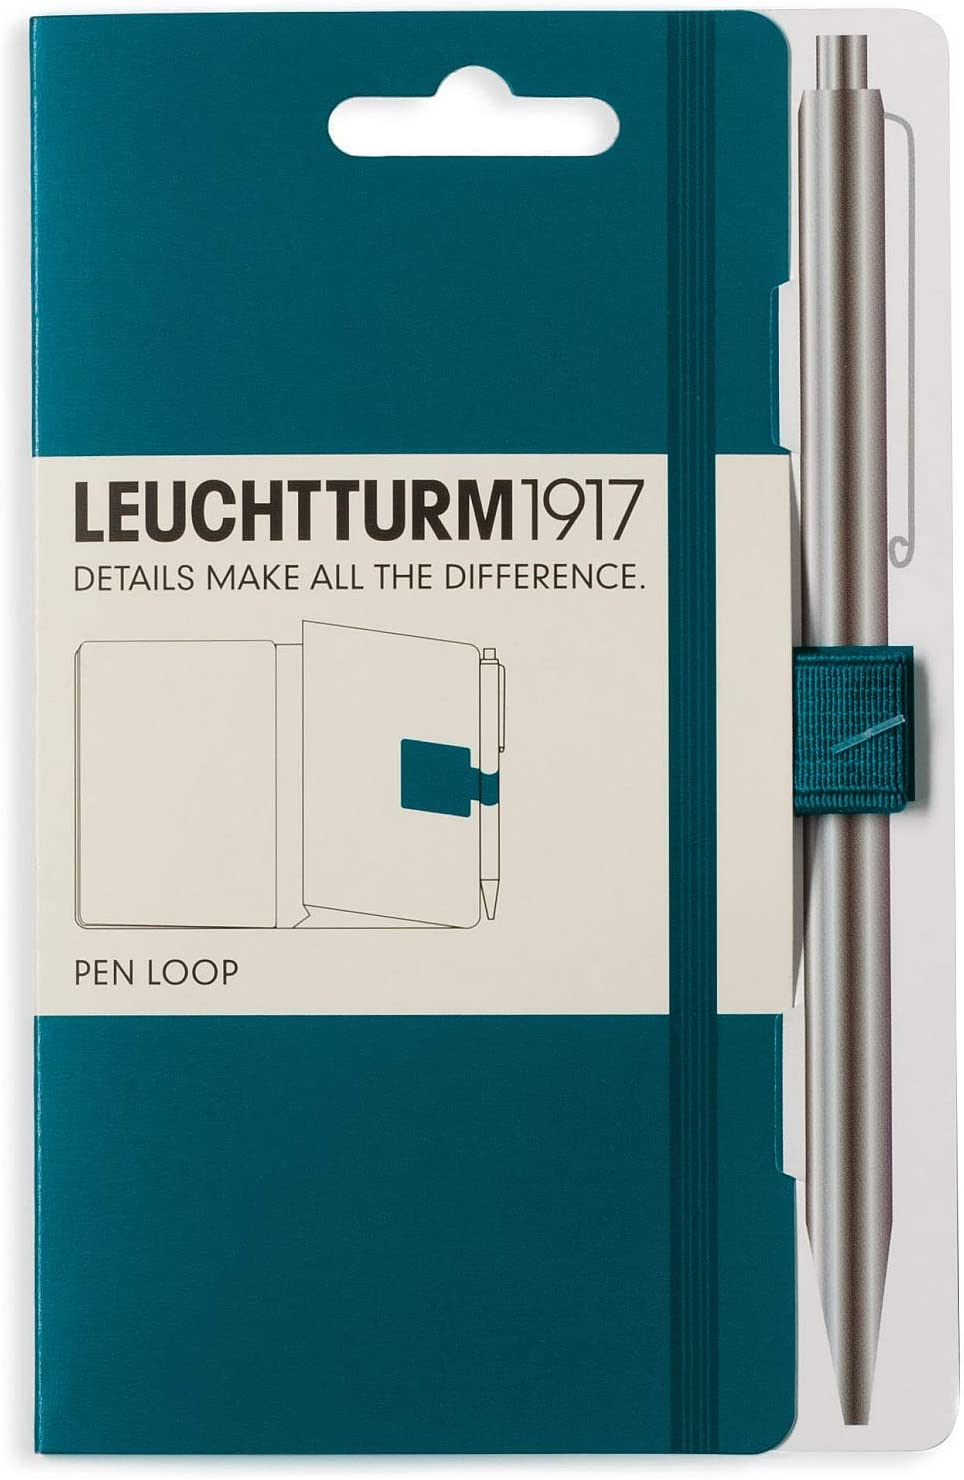 LEUCHTTURM1917 Self Adhesive Pen Loop Elastic Pen Holder - Pacific Green, Small, Model: 86606-HBJ